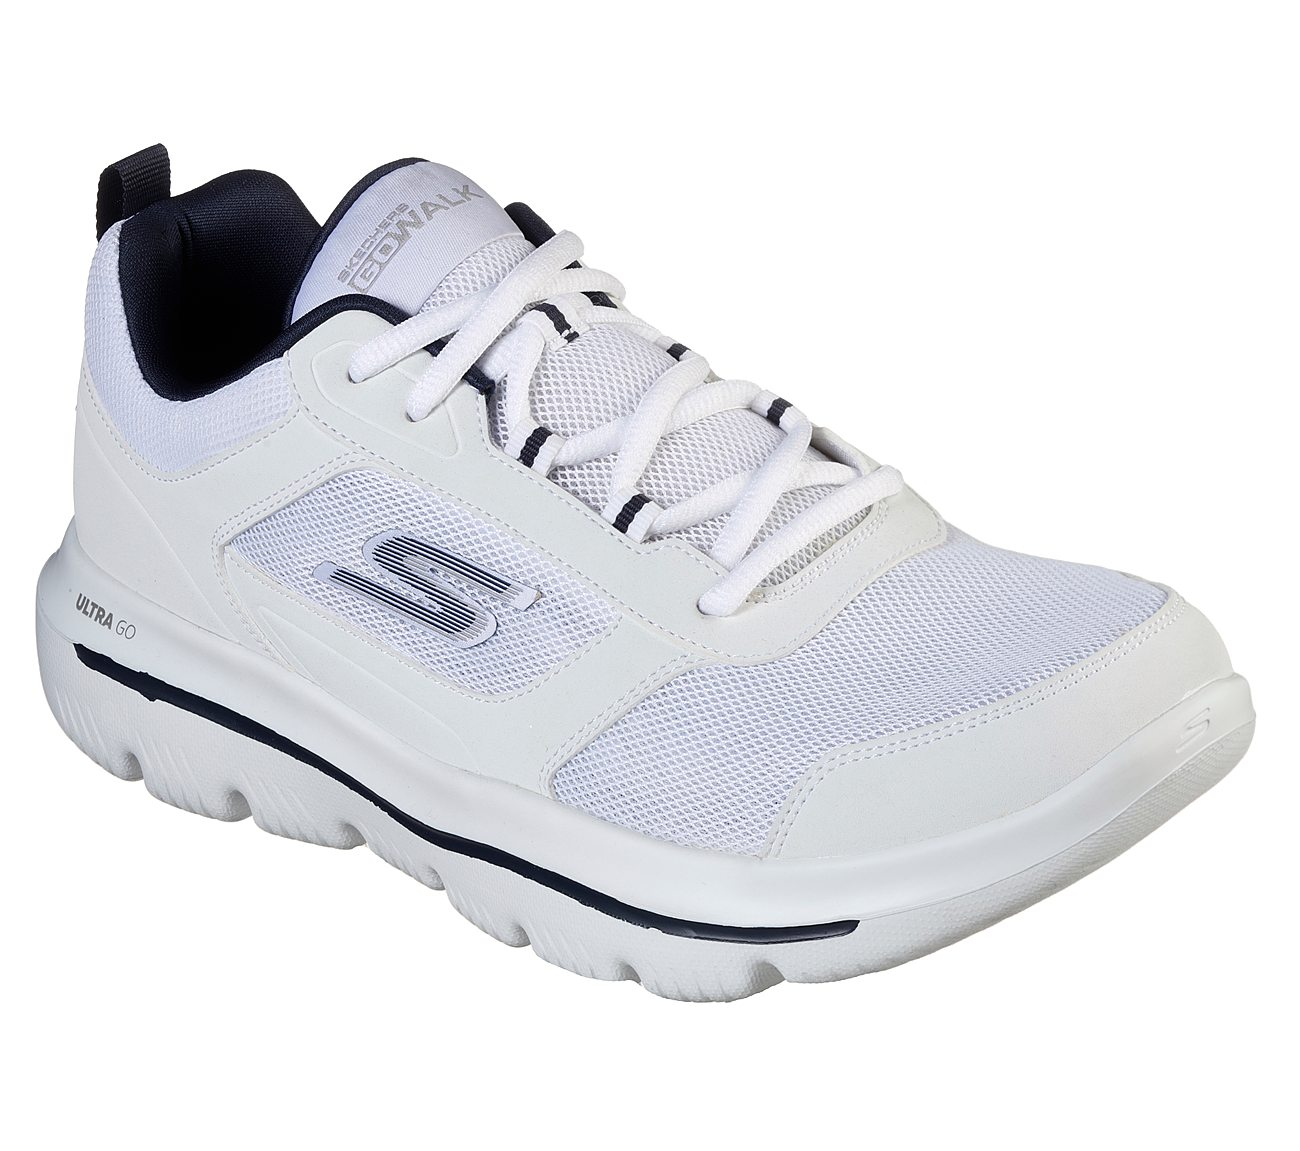 Skechers GOwalk Evolution Ultra - Enhance